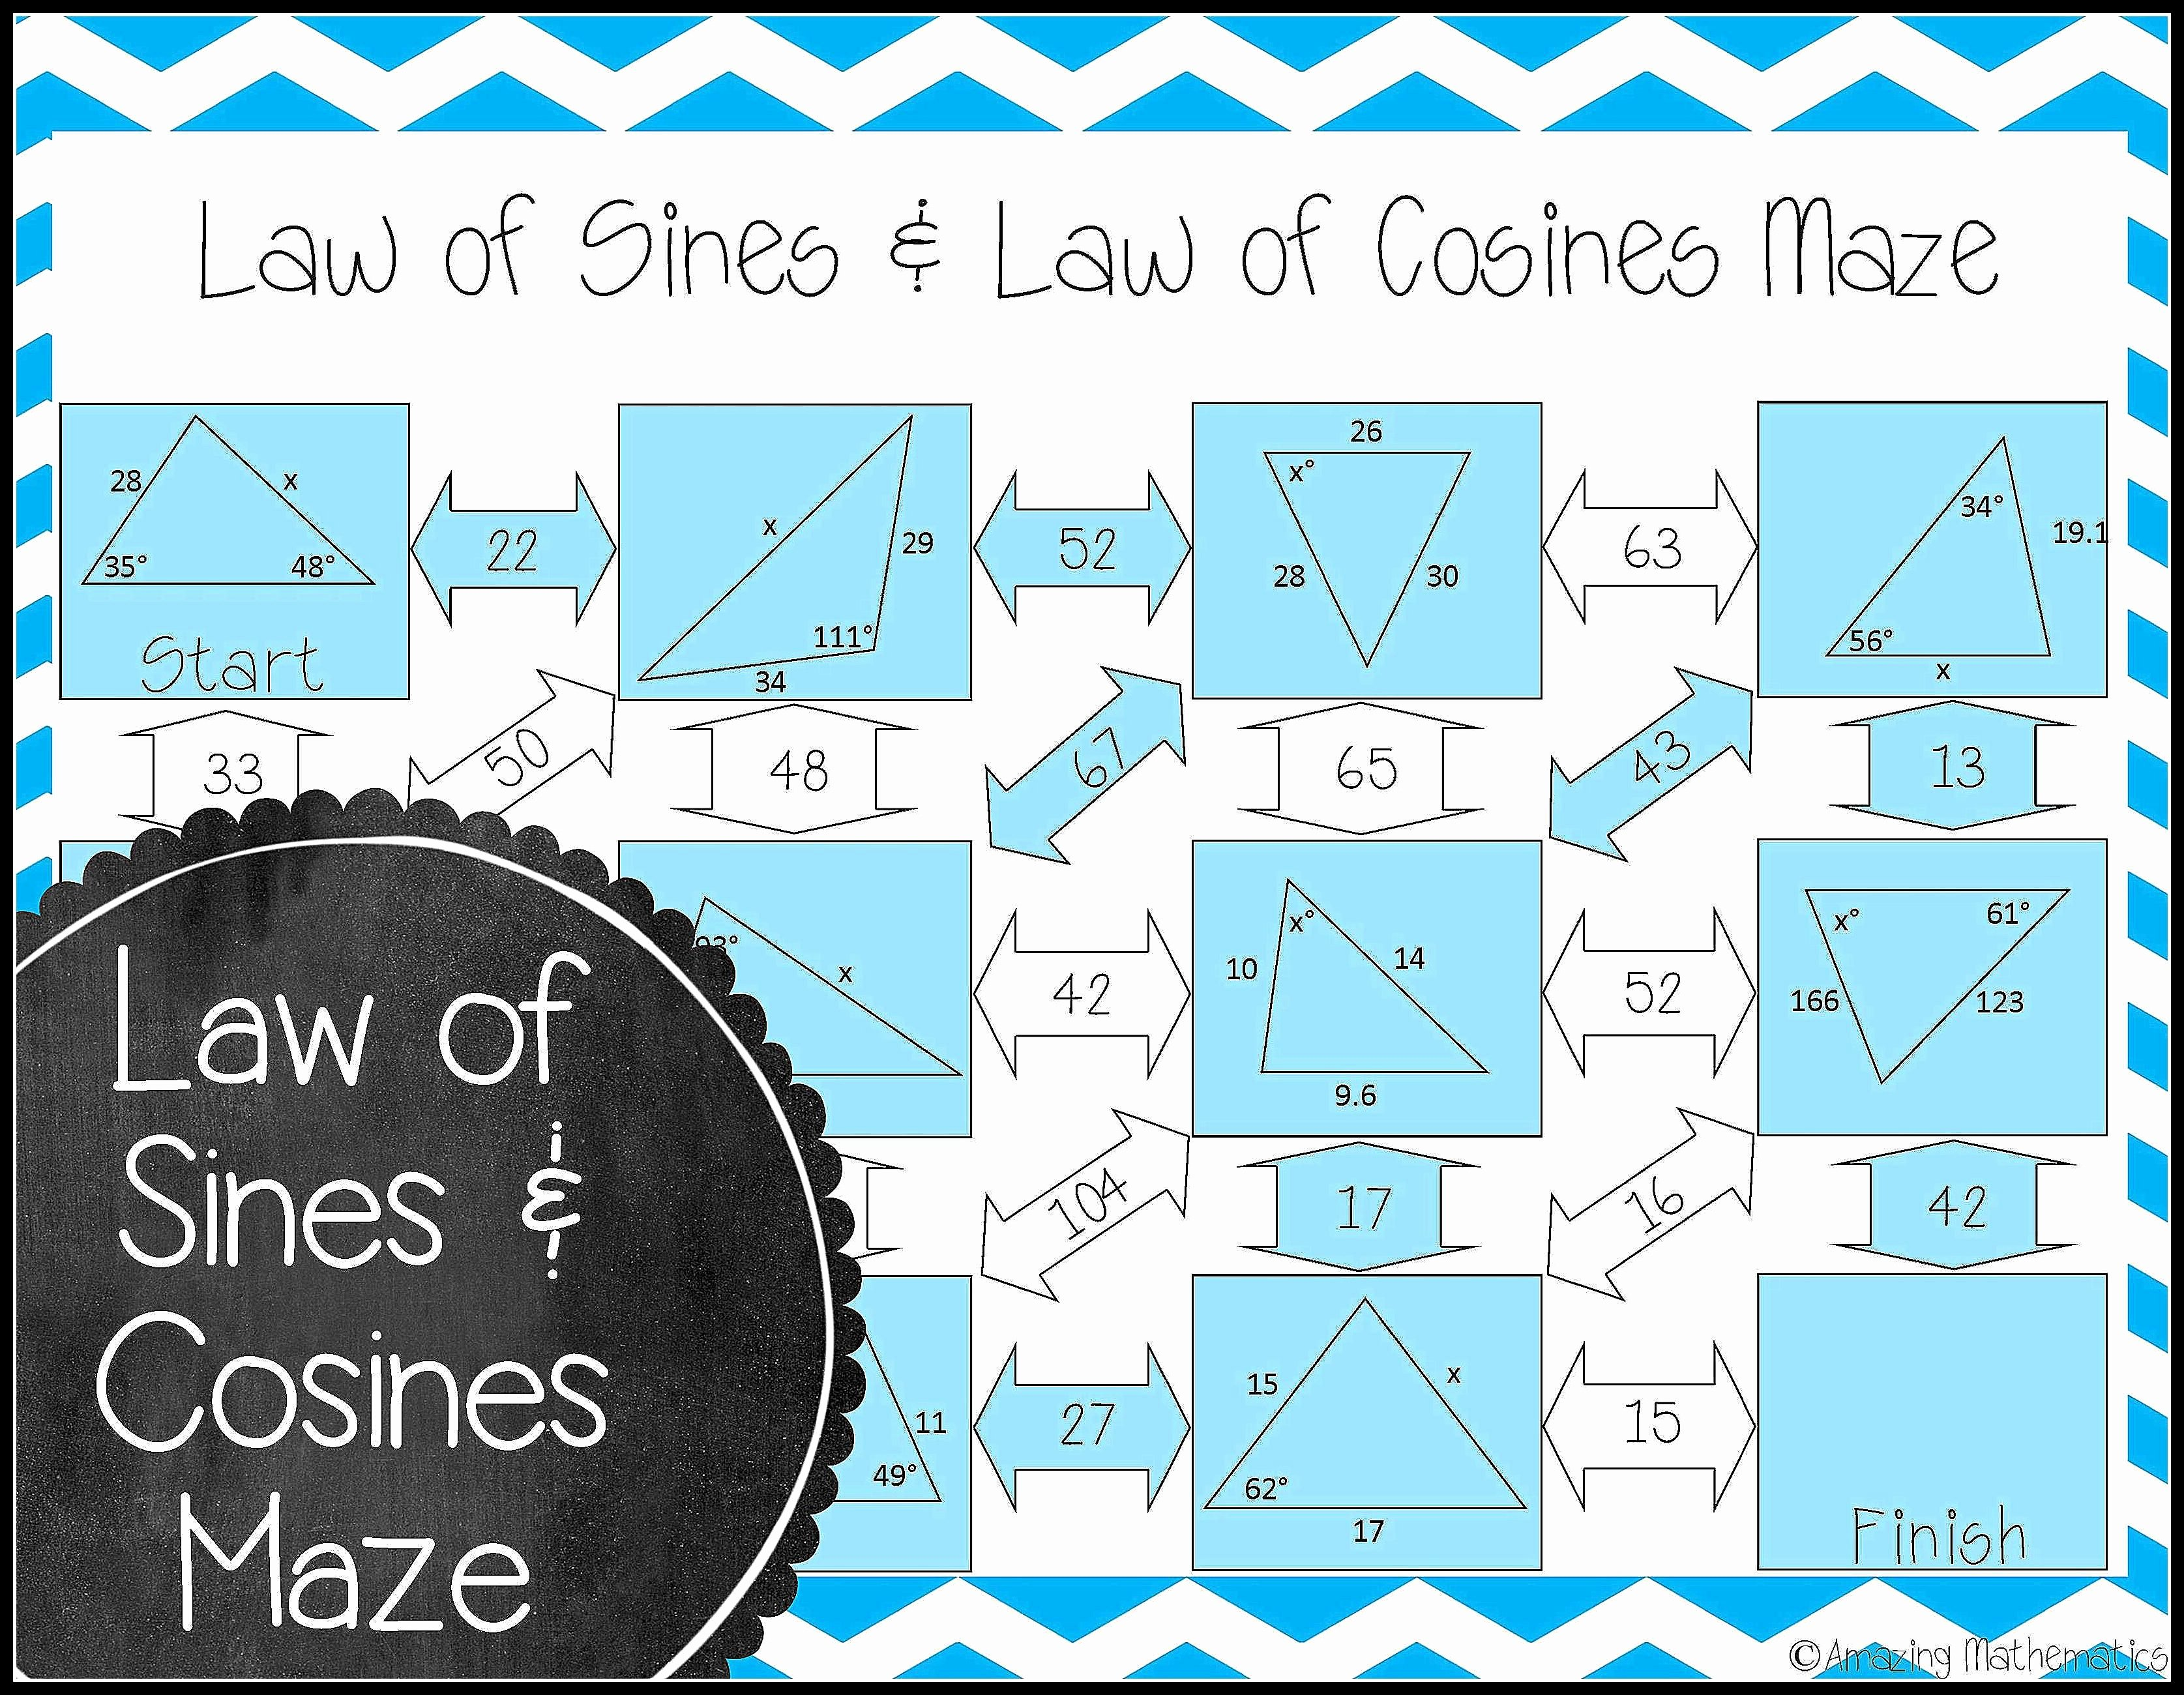 Law Of Sines Worksheet Answers New Law Of Sines and Law Of Cosines Maze Mathematics